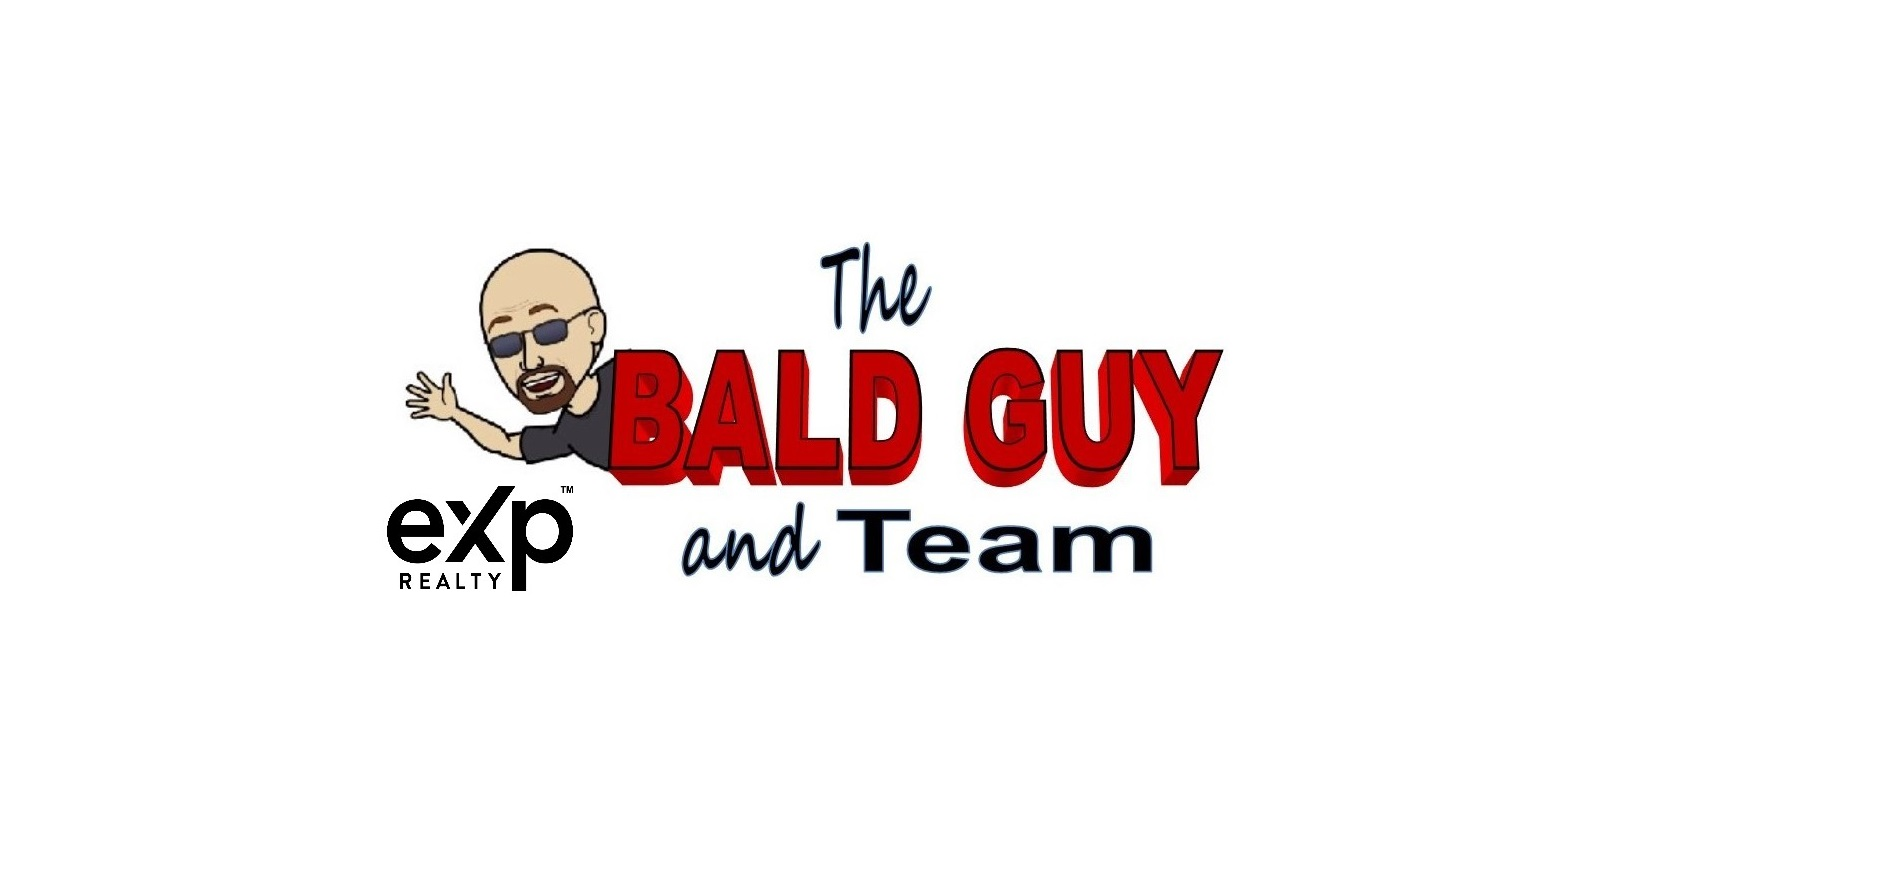 Troy Brown The Bald Guy and Team with eXp Realty